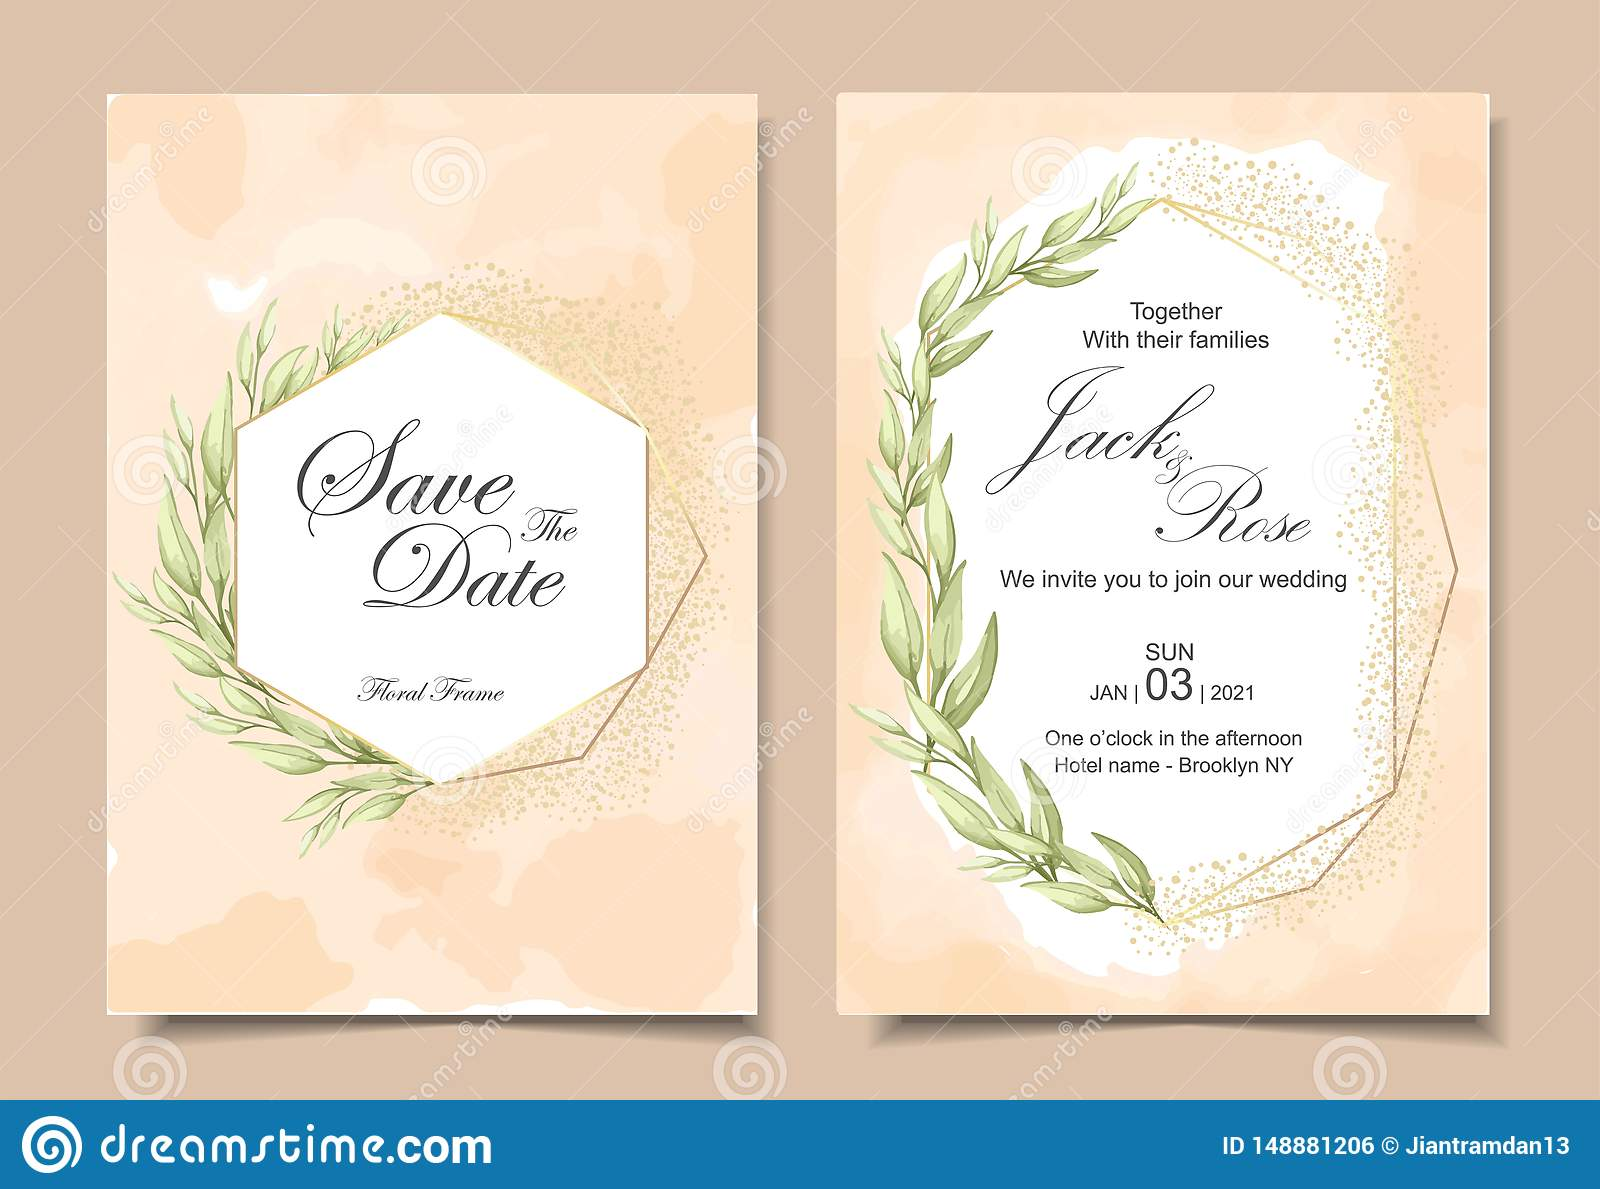 Vintage Wedding Invitation Cards wih Watercolor Background Texture, Geometric Golden Frame, and Watercolor Hand Drawing Leaves.